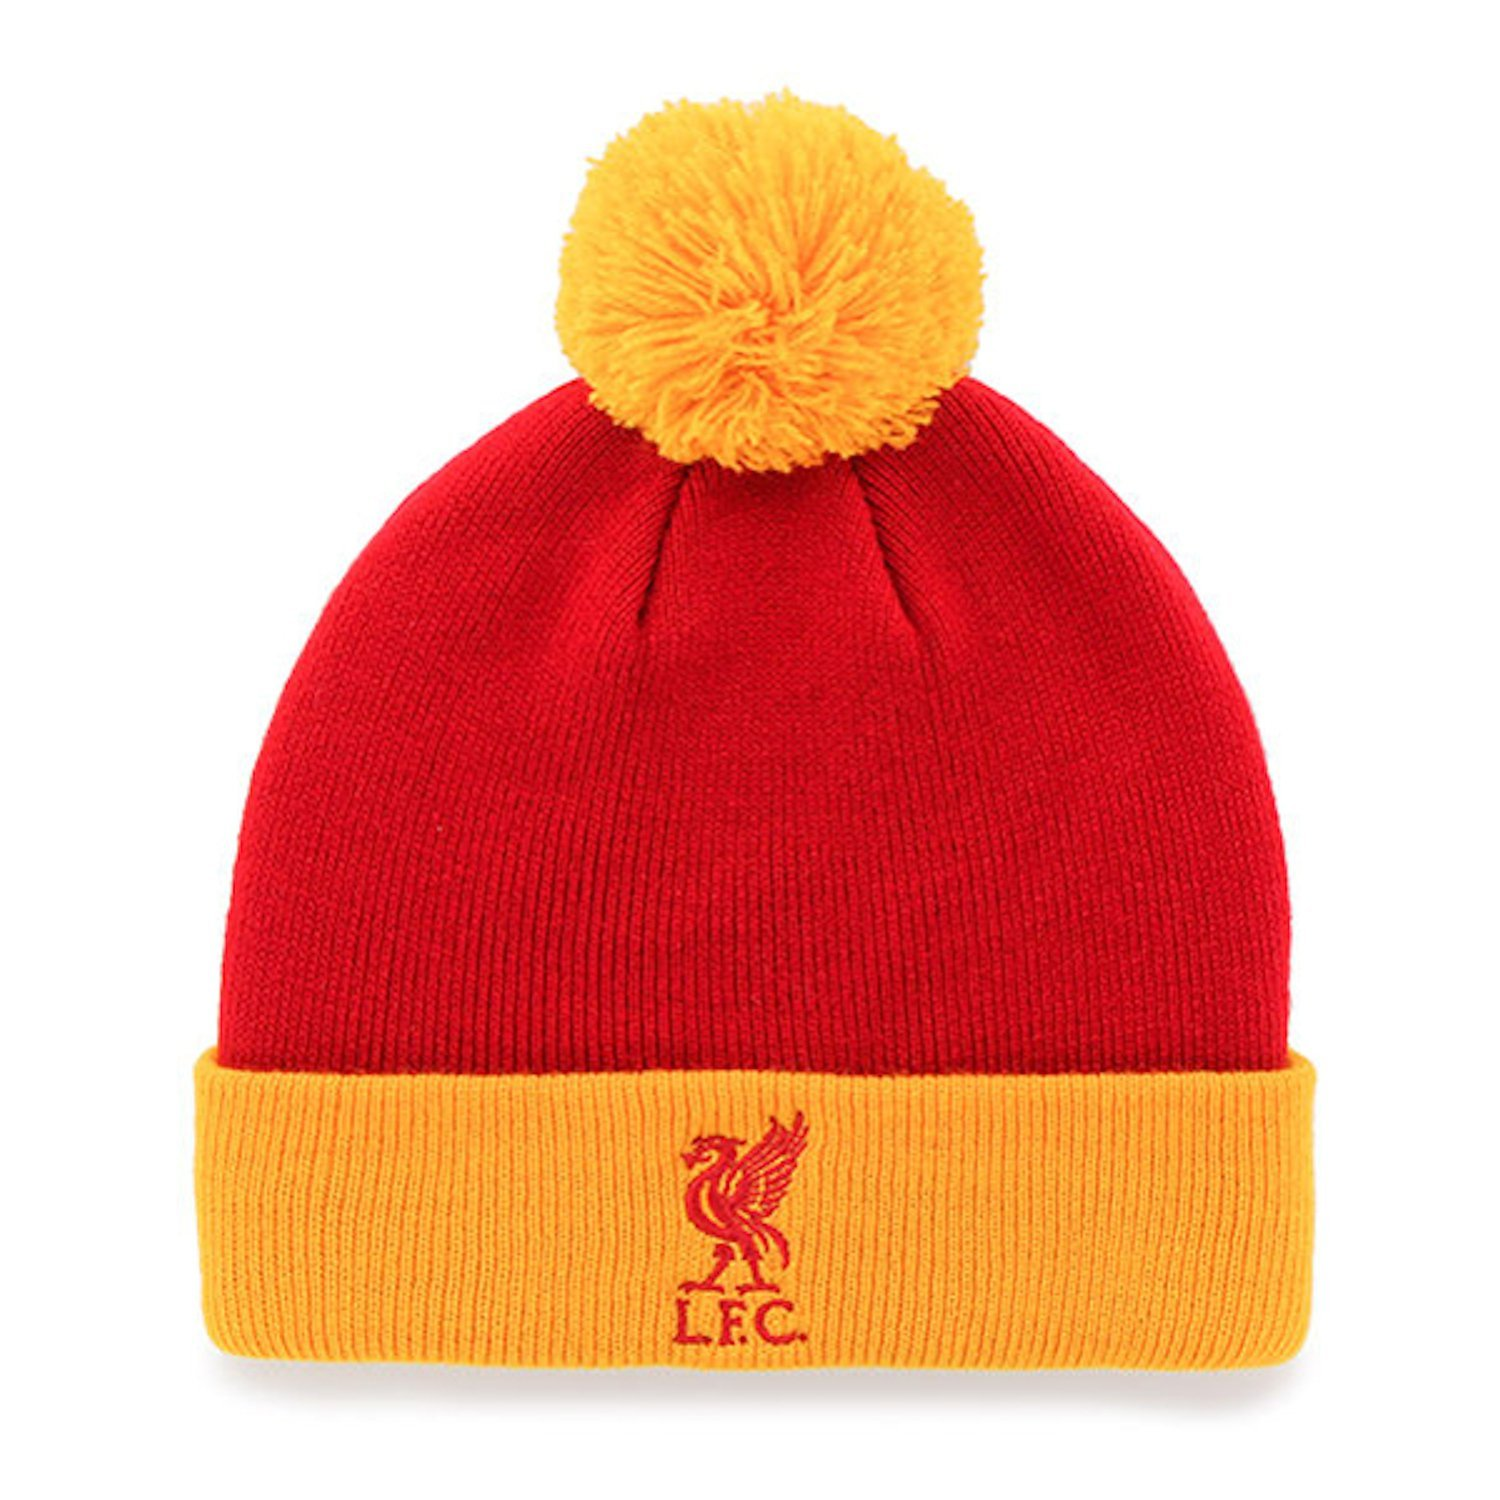 d3dc8d7b830 Get Quotations · Liverpool F.C Knitted Turn Up Bobble Hat Red Yellow